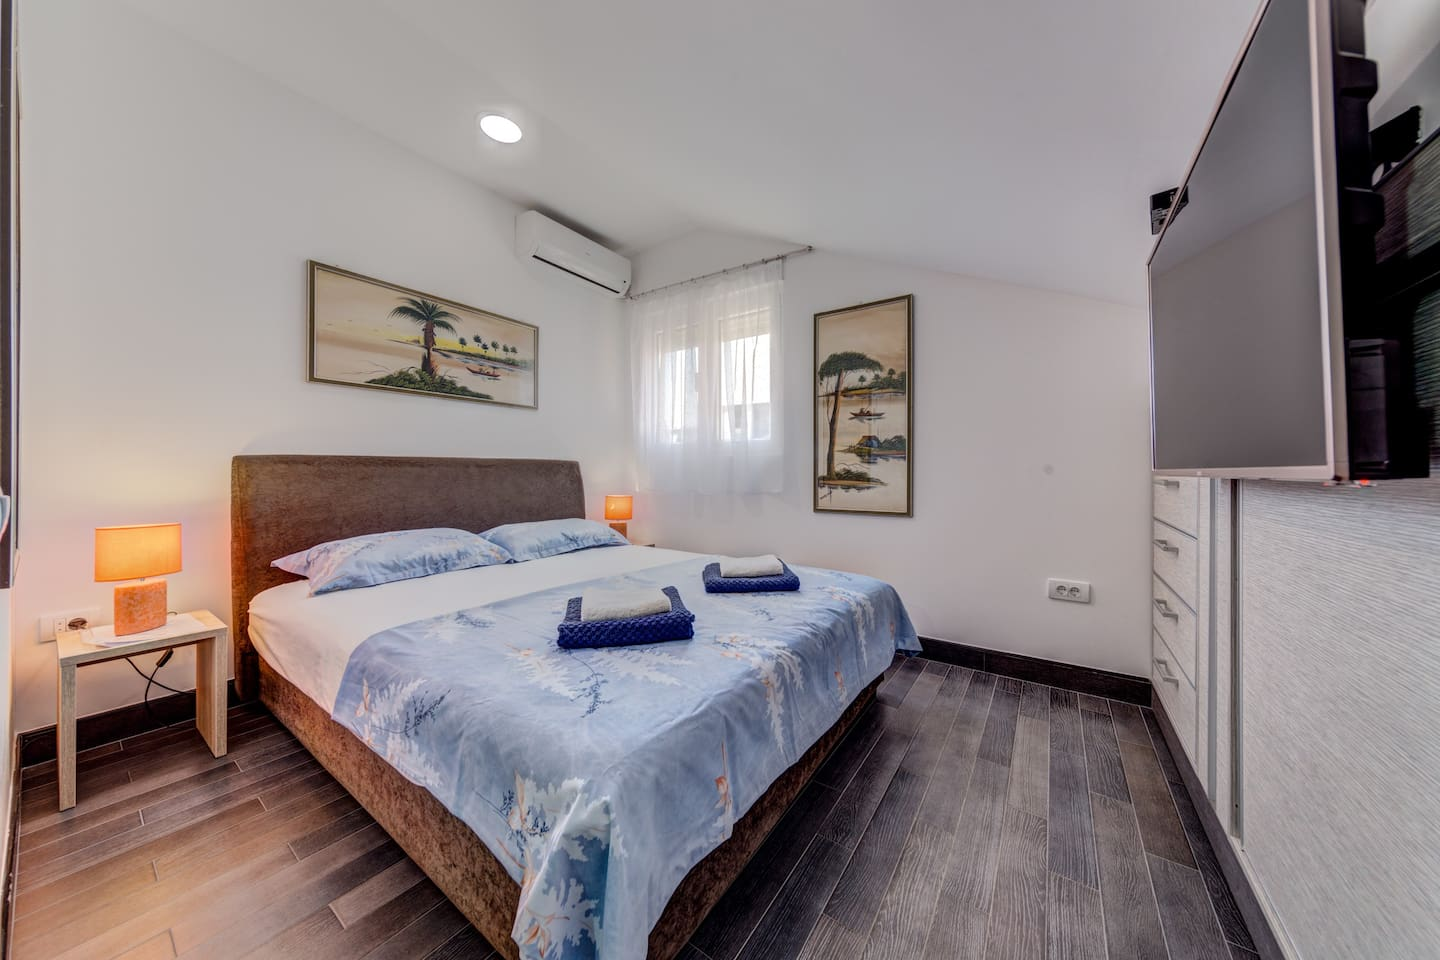 Stefano room with private bathroom is ideal for those who prefer to travel in couples.